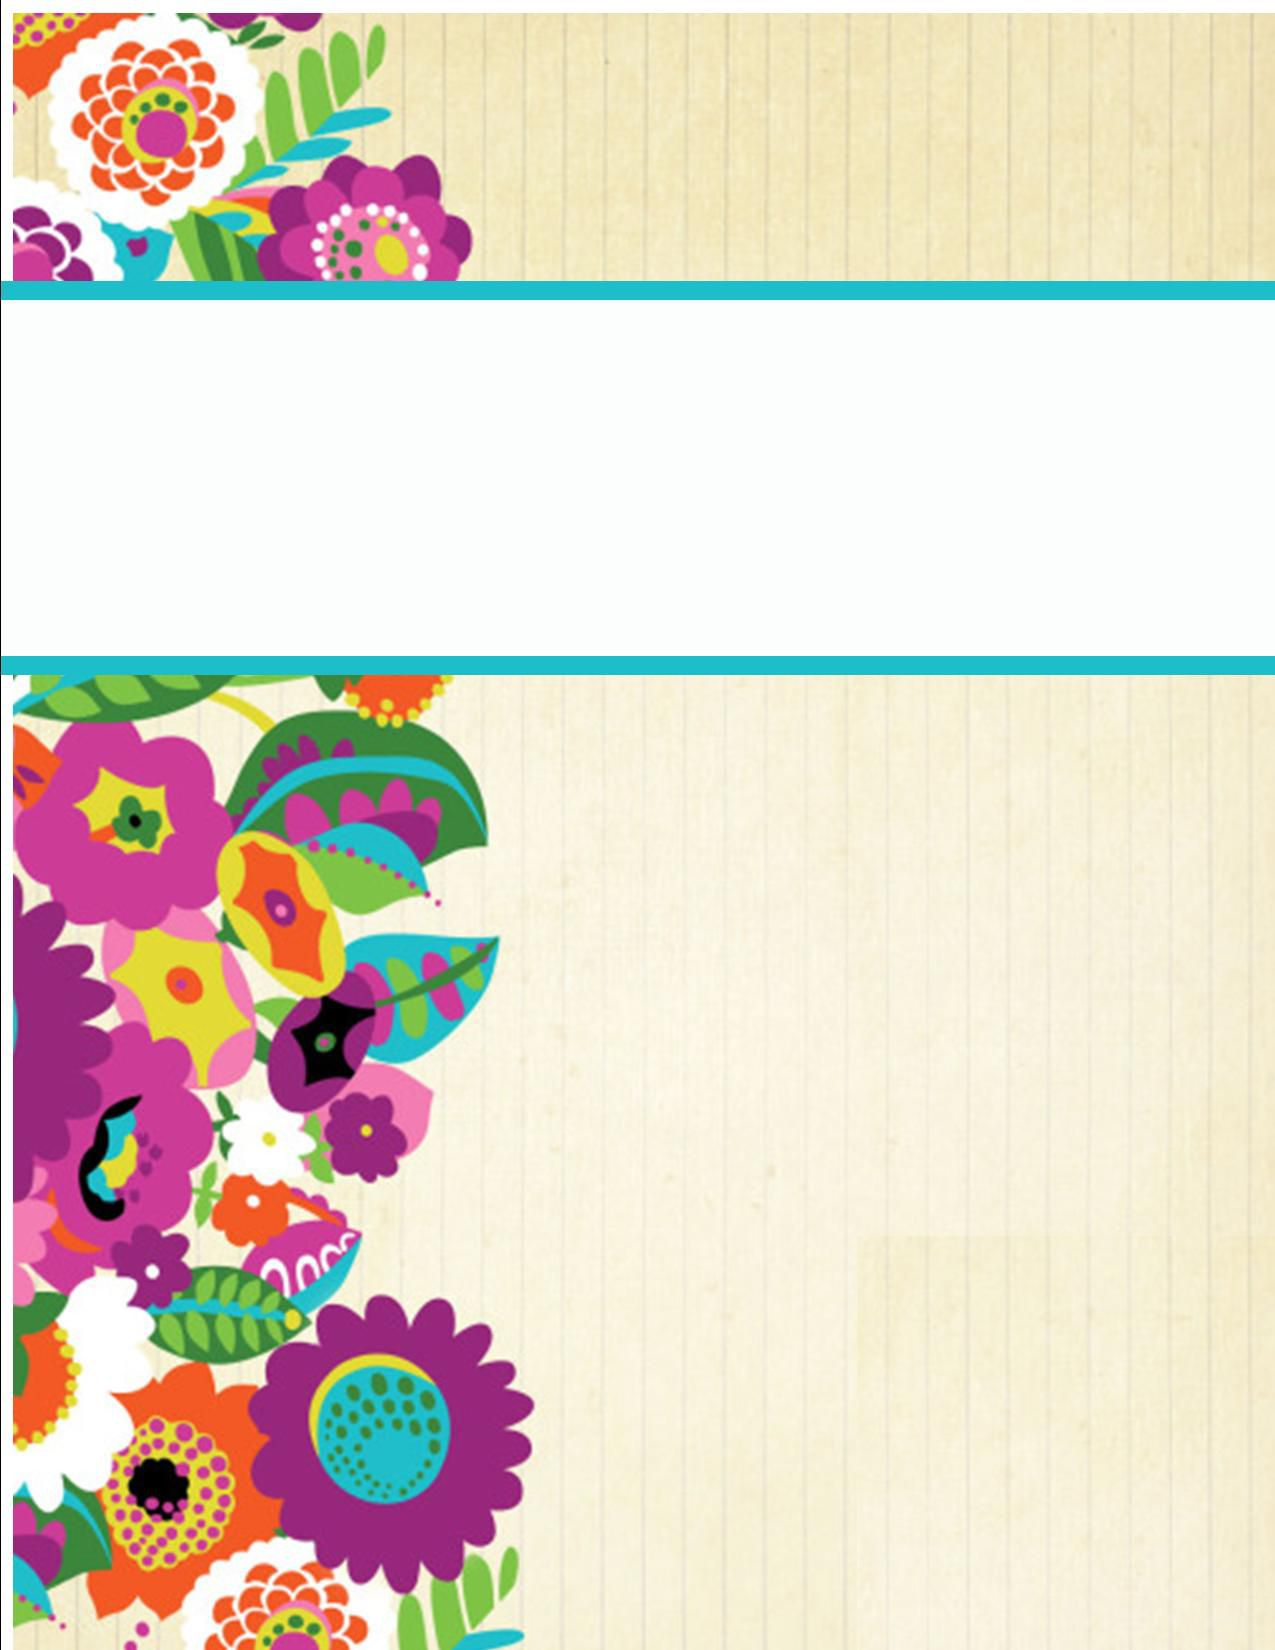 002 Formidable Cute Binder Cover Template Free Printable Image Full